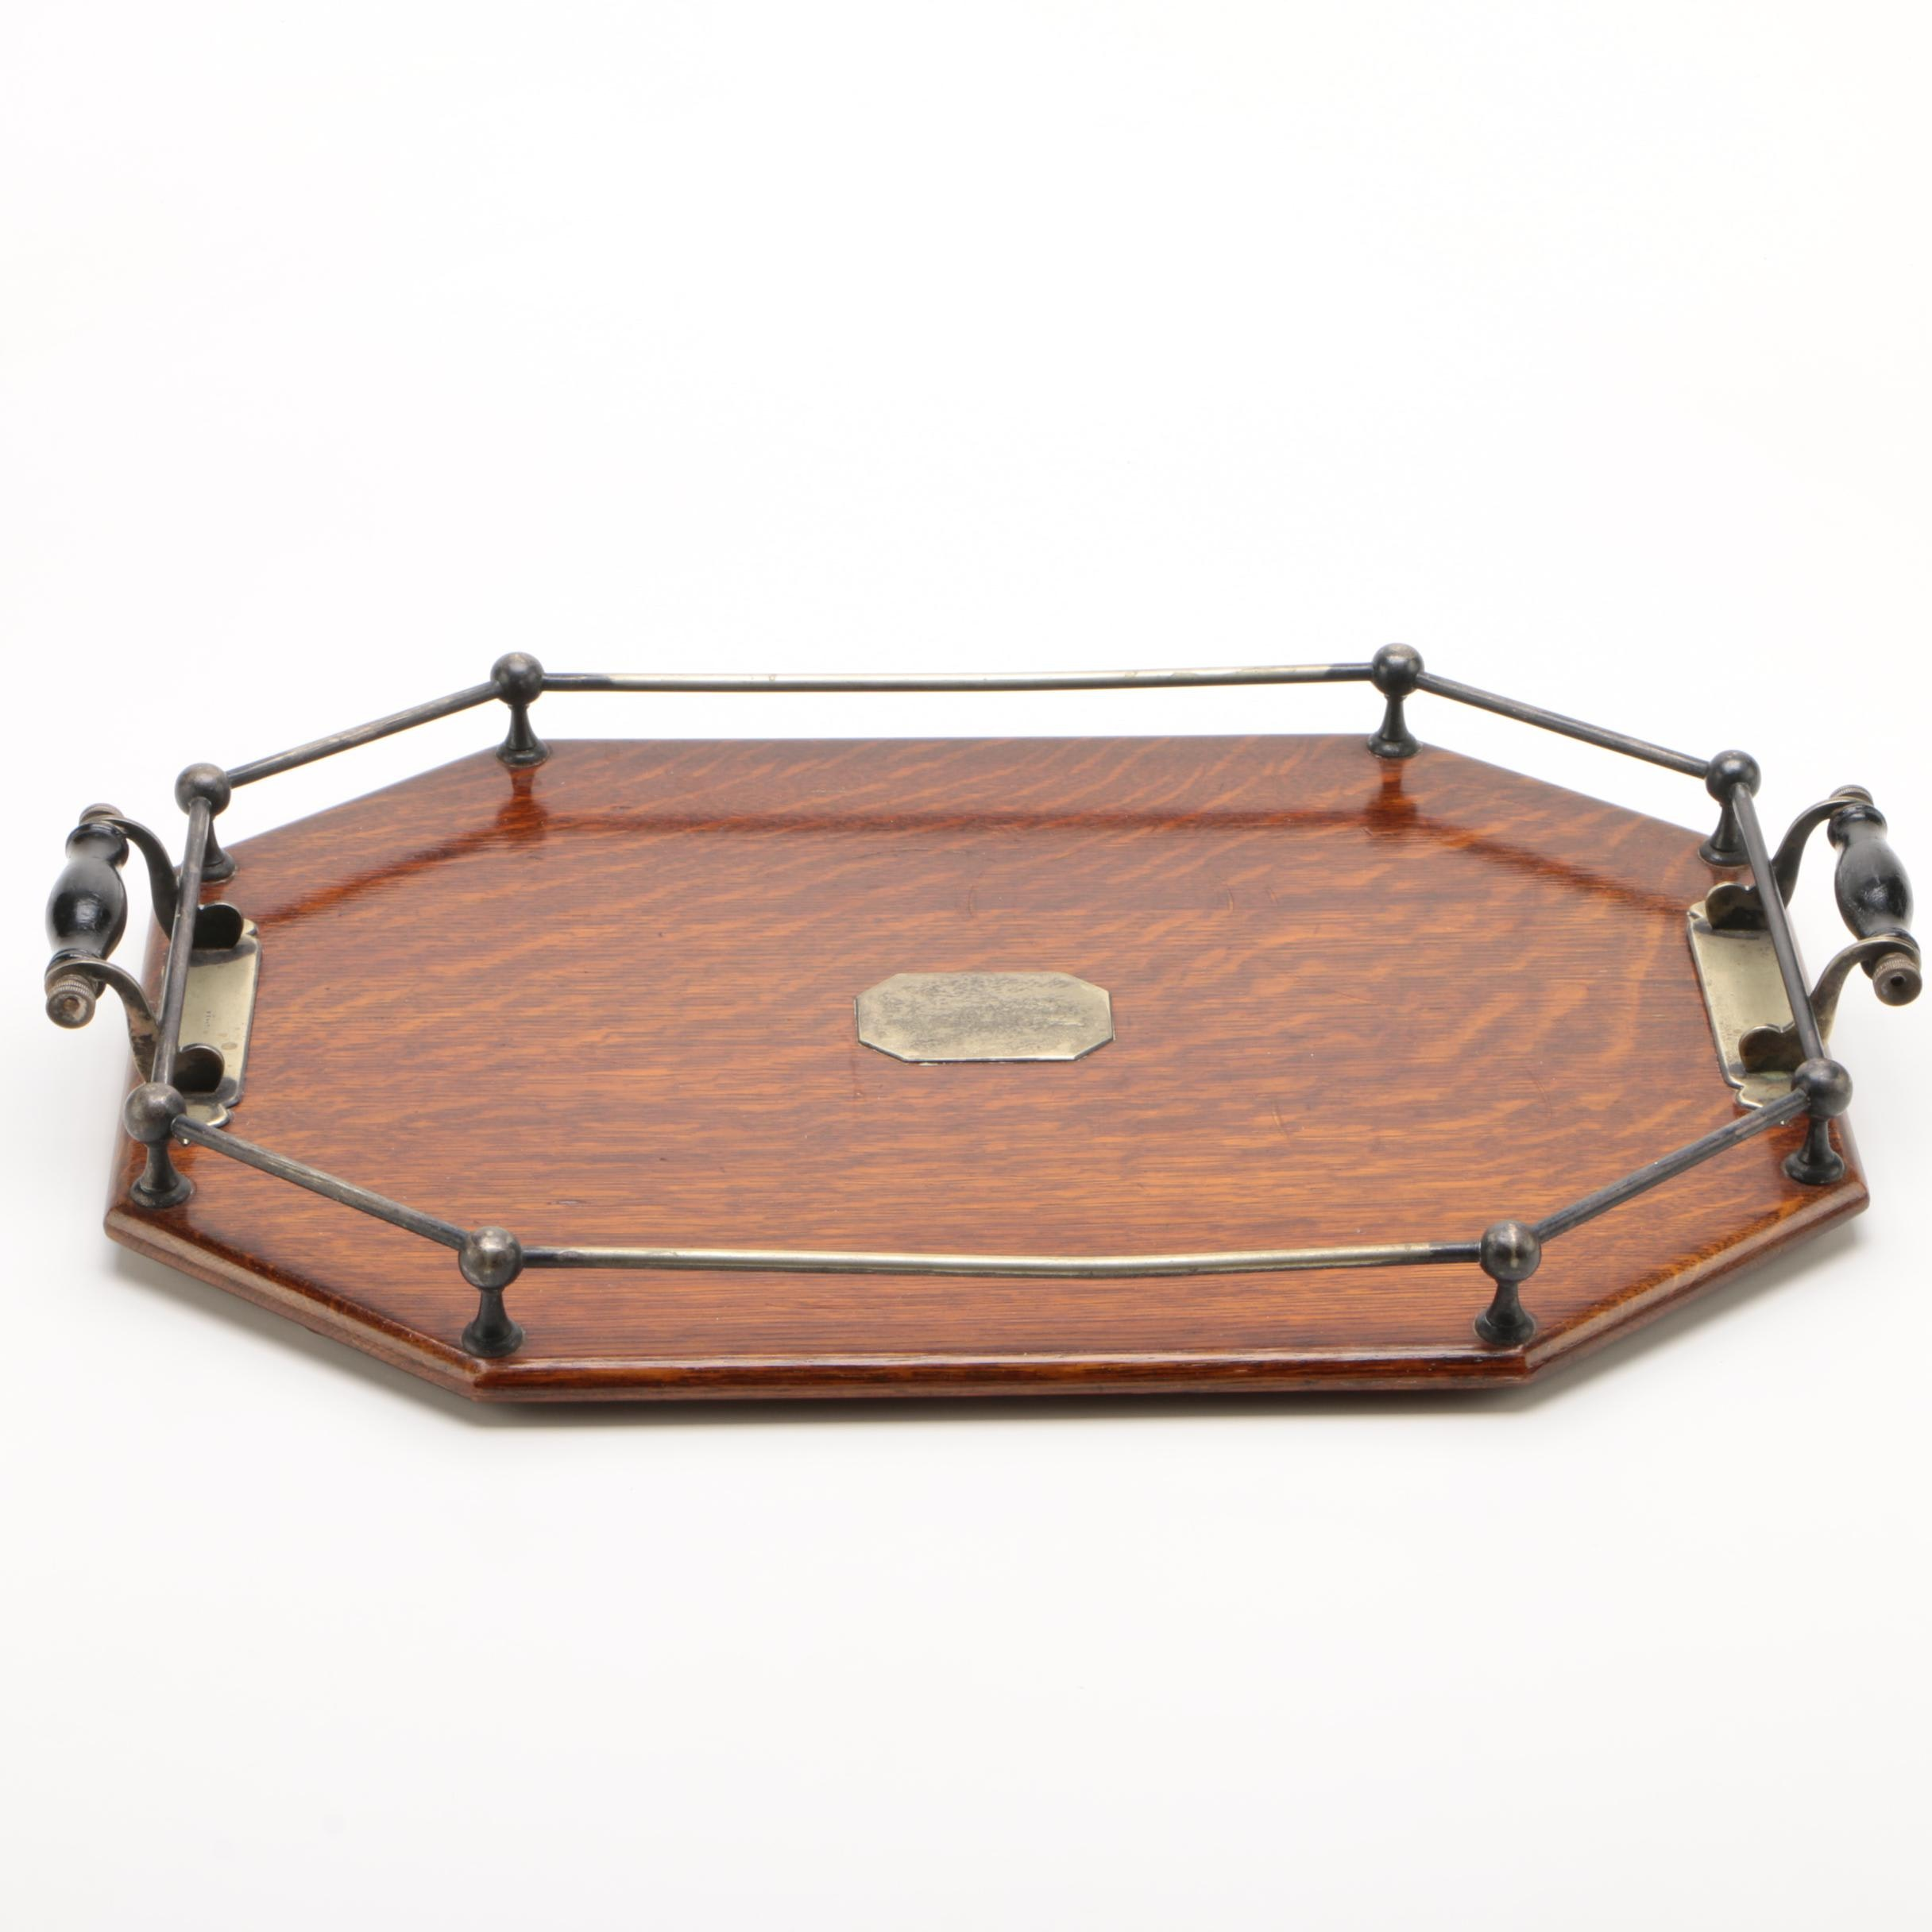 Silver Plate and Quarter Sawn Oak Serving Tray, Early 20th Century